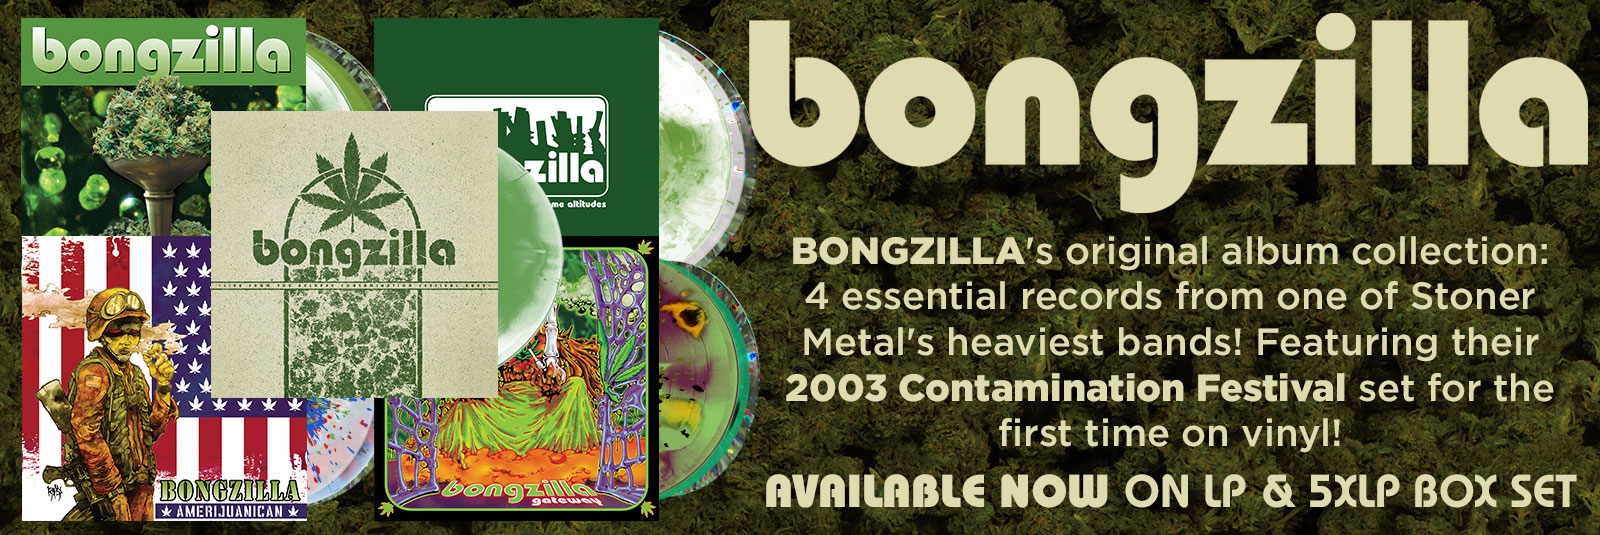 bongzilla-doom-metal-sludge-metal